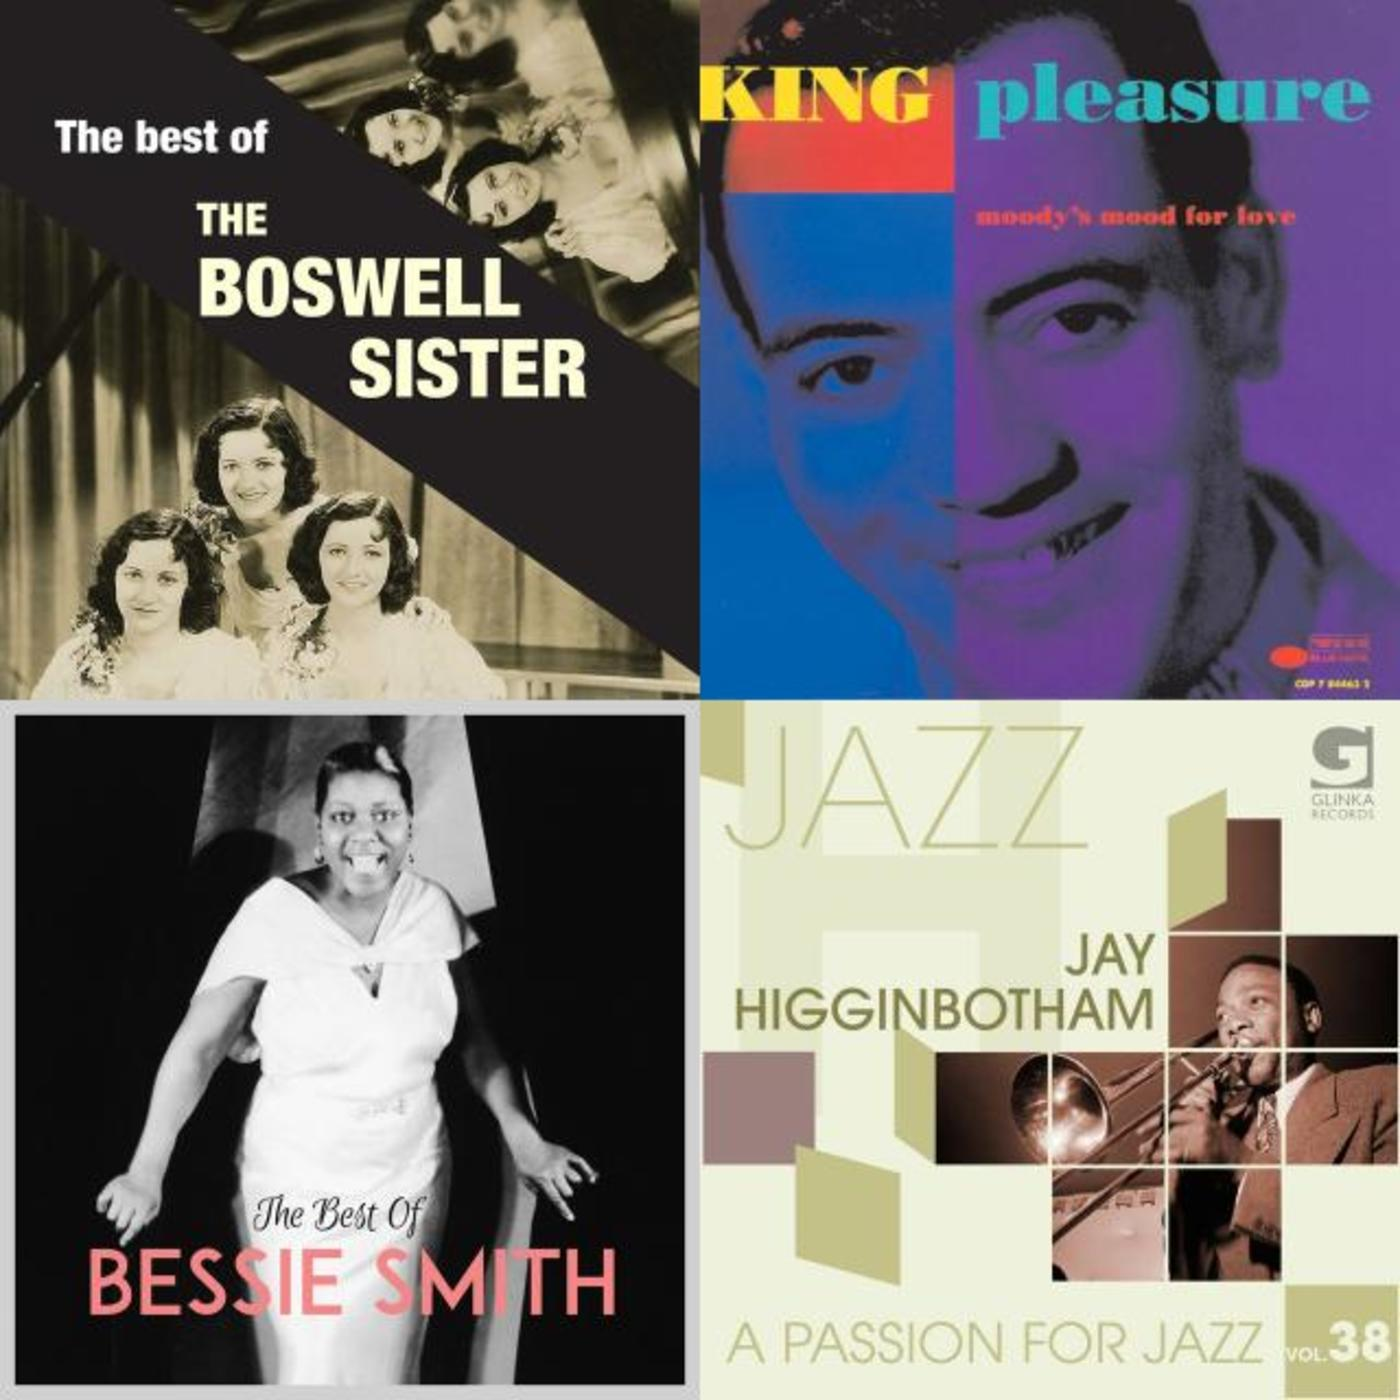 JazzSingers - Louis Armstrong, Cab Calloway, Billy Eckstine, Buddy Baker Orchestra, King Pleasure, Bessie Smith, The Doswell Sisters, Ella Fitzgerald, Johnny Hartman, Sarah Vaughan